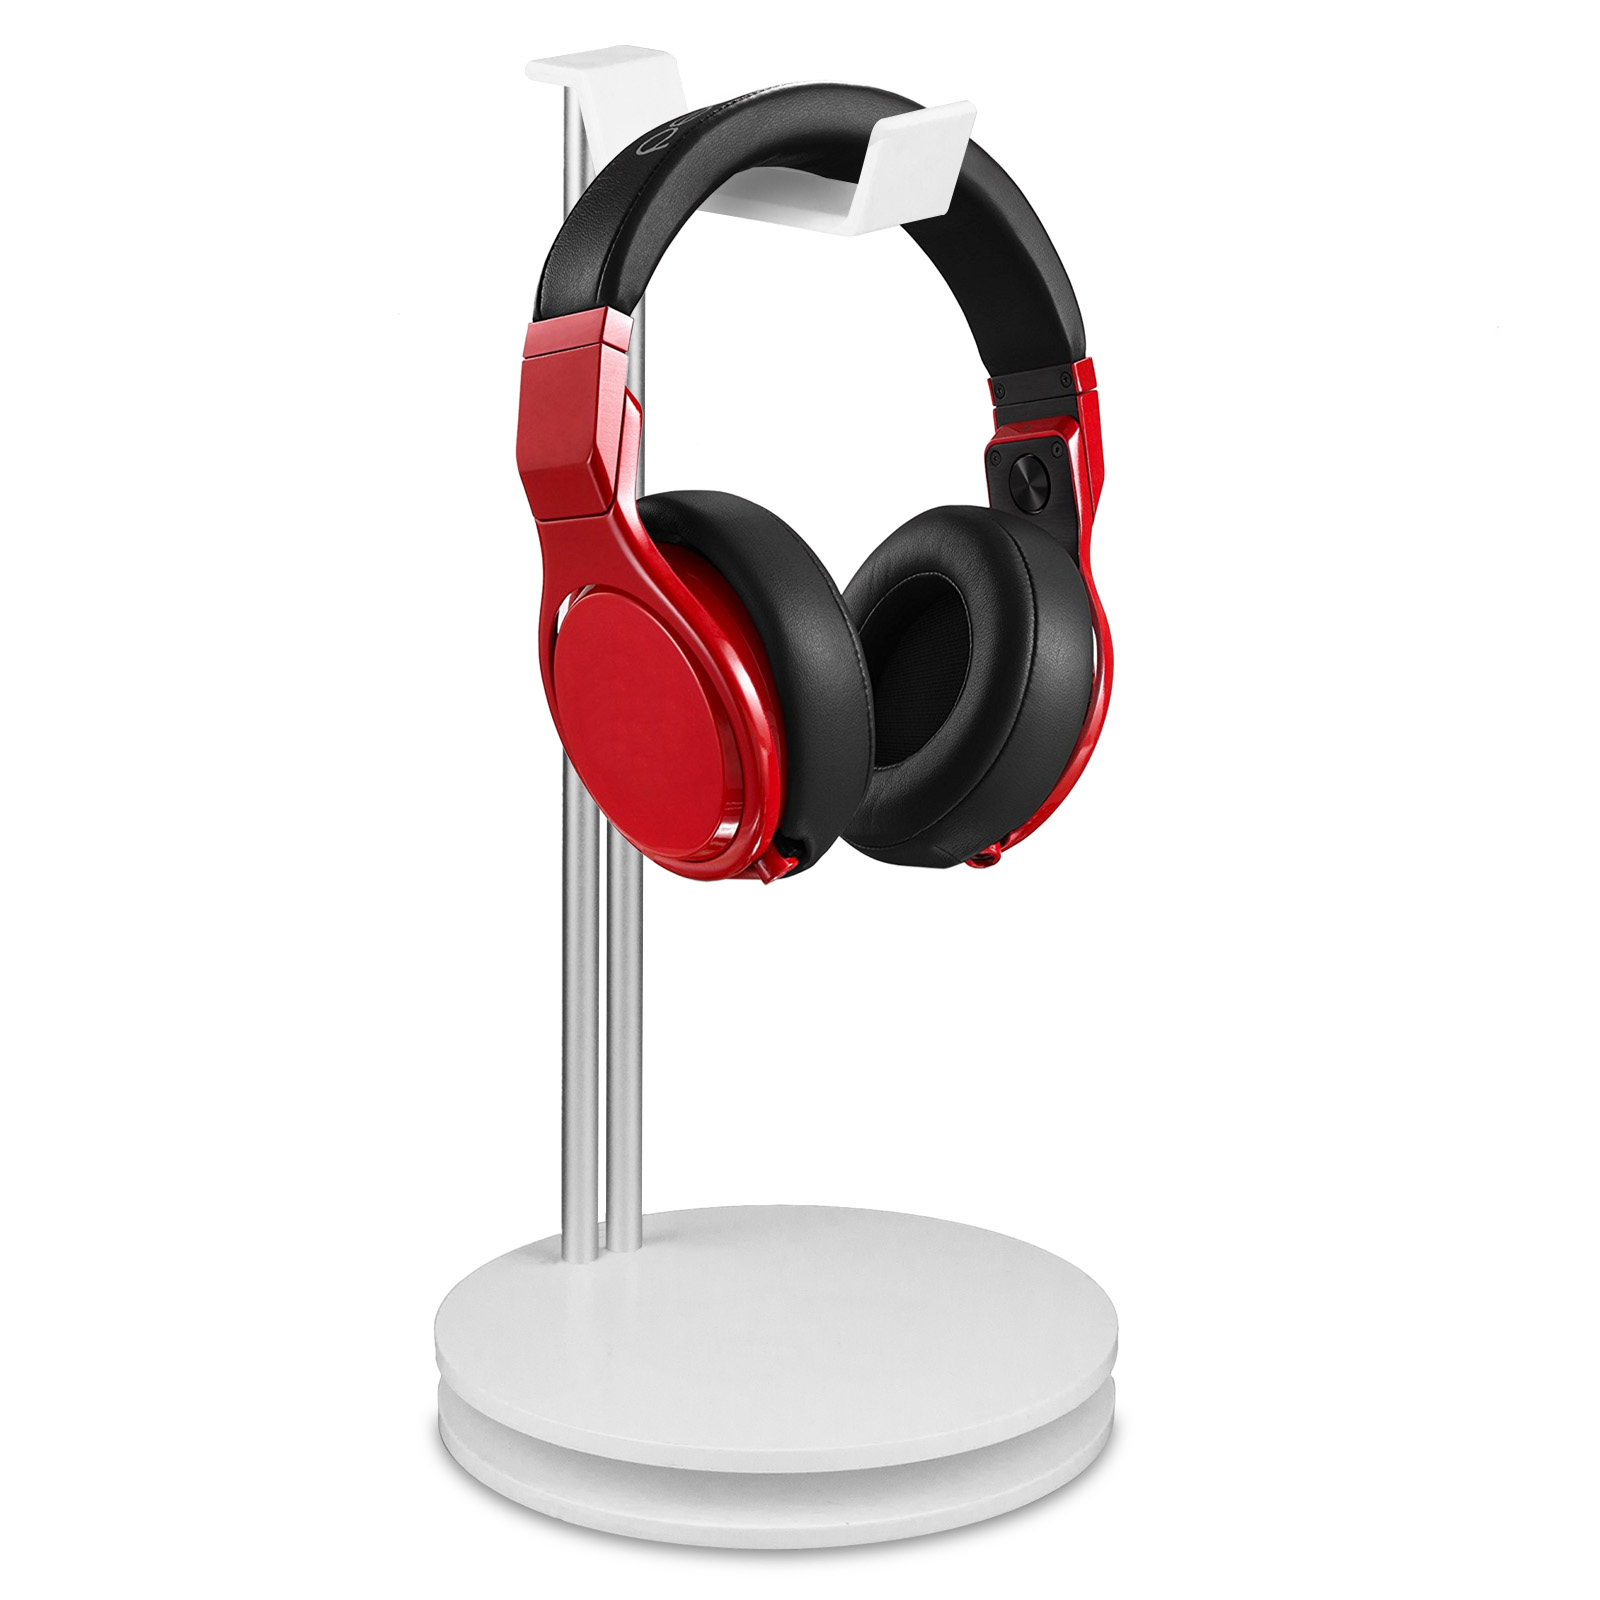 TSV Universal Aluminum Headphone Stand Headset Holder Earphone Stand Bar Mount with Cable Organizer by TSV